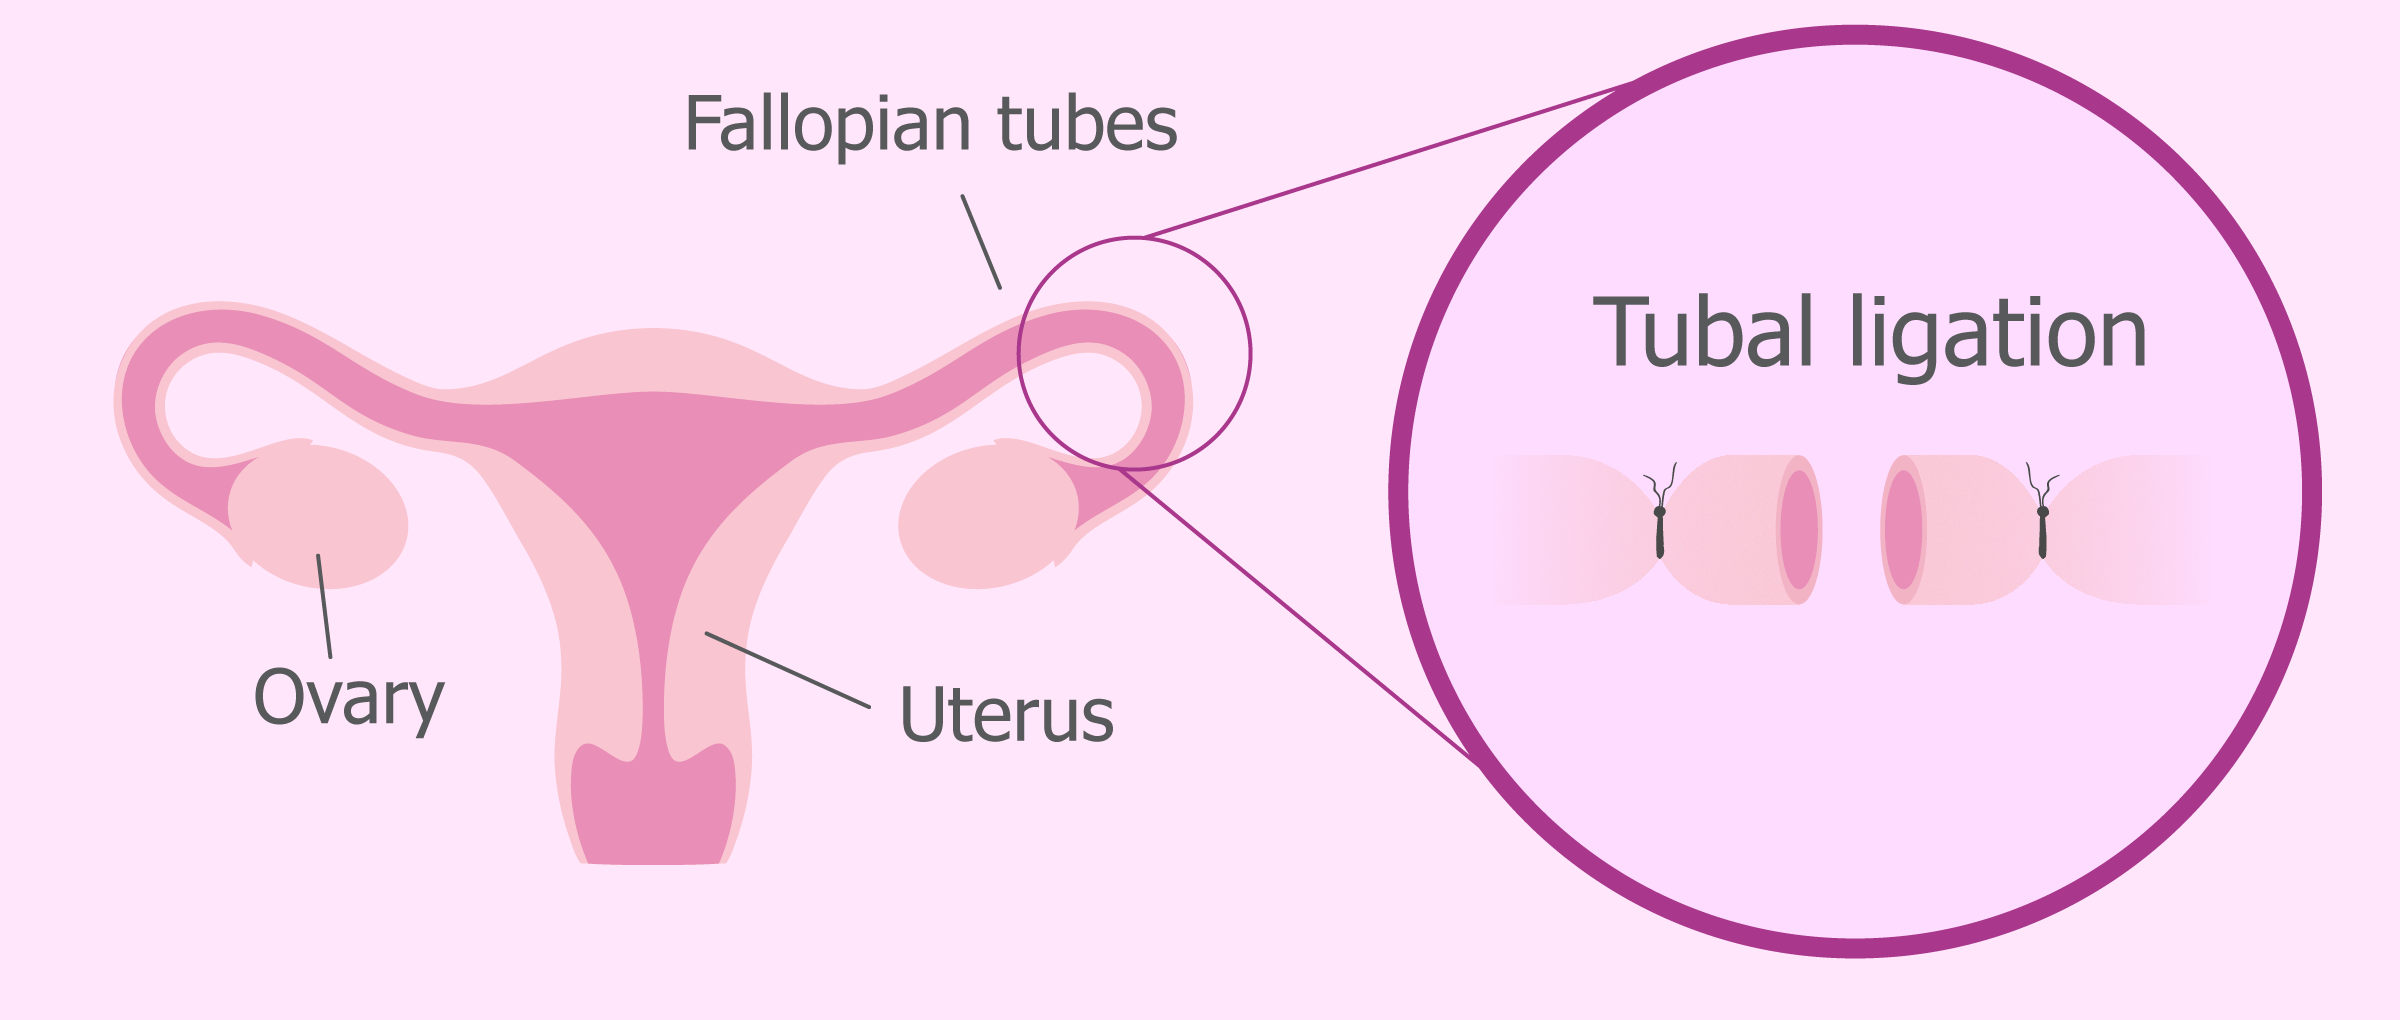 Tubal Ligation Procedure - Should You Get Your Tubes Tied?